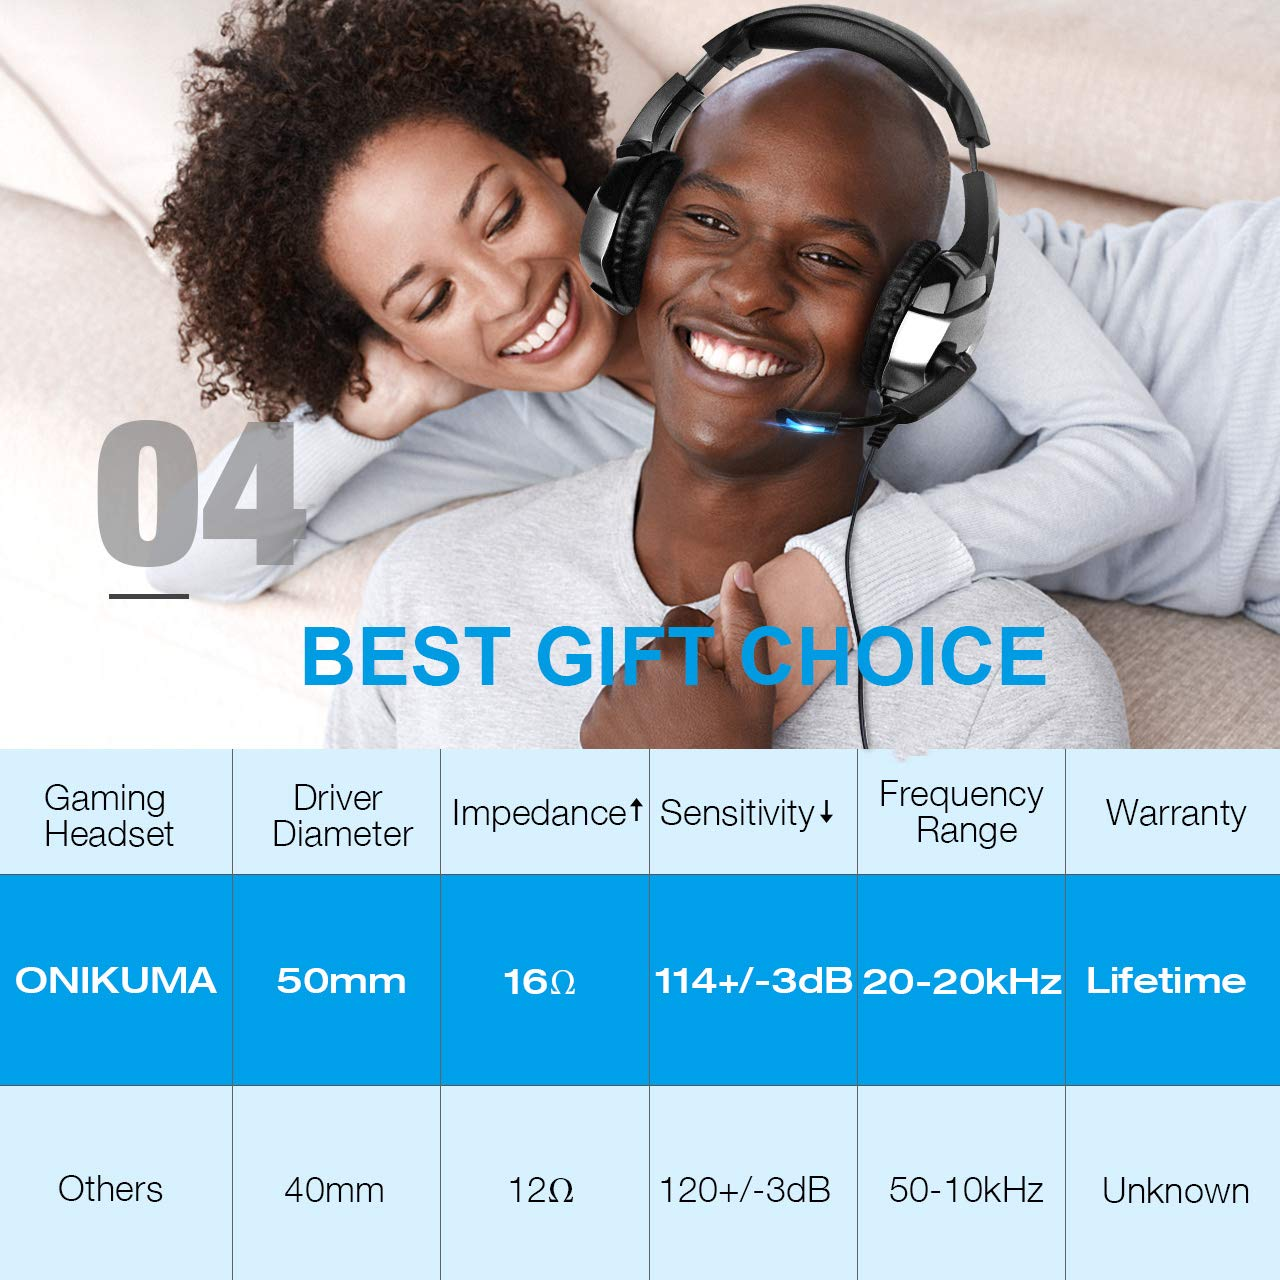 ONIKUMA Gaming Headset for PS4, Xbox One, PC, Gaming Headphones with 7.1 Stereo Surround Sound, Updated Noise Cancelling Mic, PS4 Headset Xbox Headset with Mute & Volume Control for Mac, Laptop, NS by ONIKUMA (Image #6)